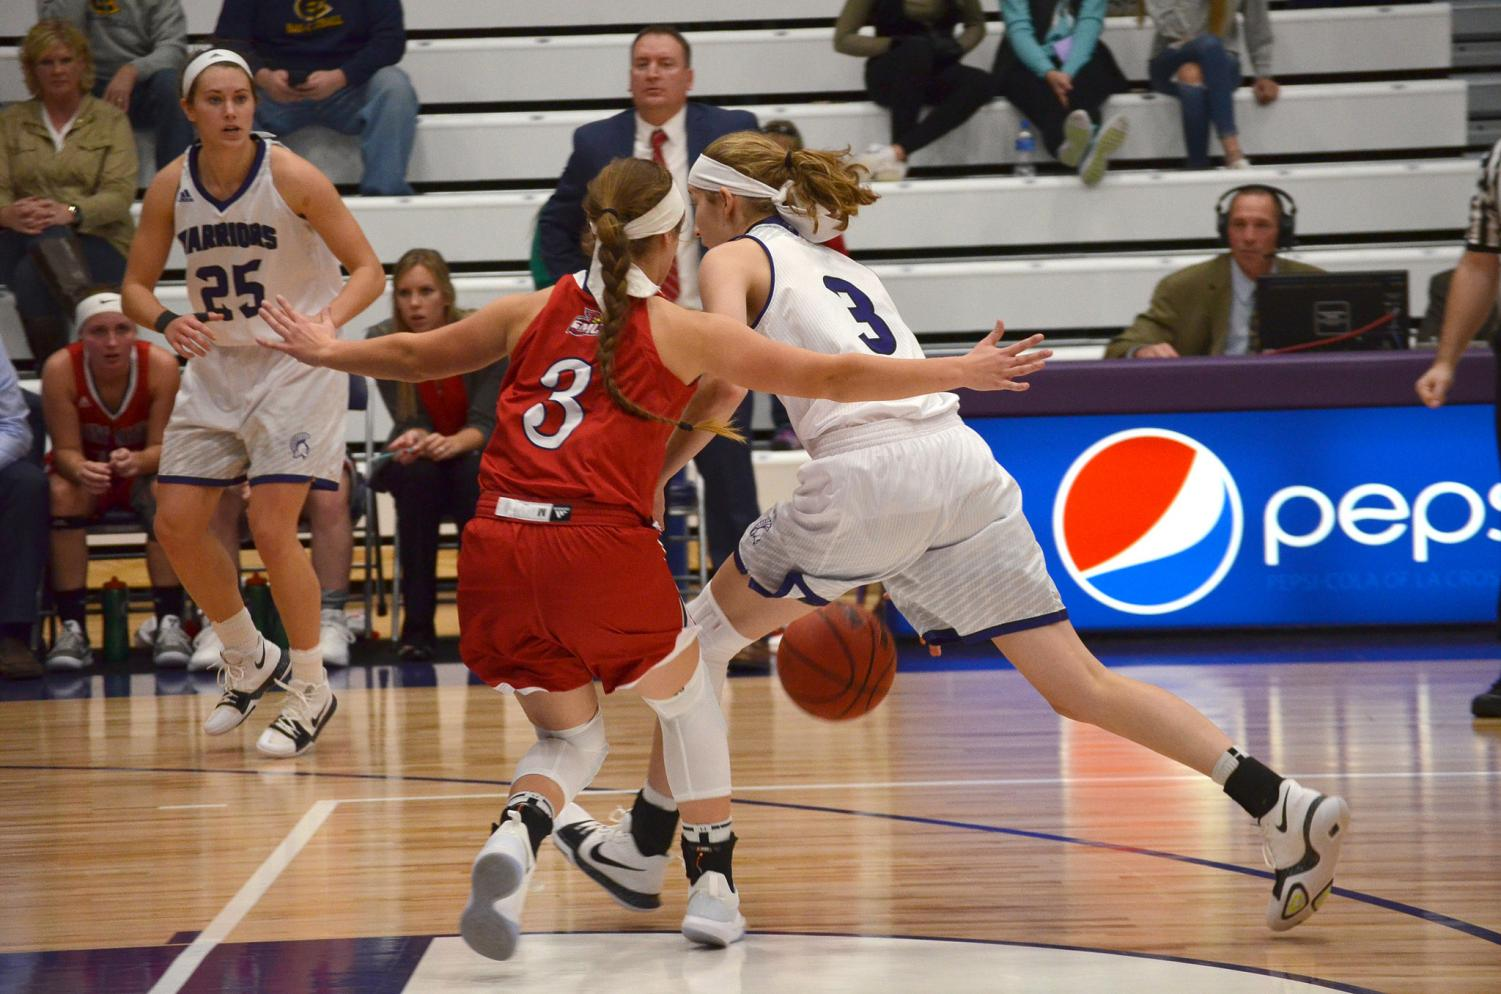 Junior guard Liz Evenocheck surges towards the basket at an exhibition game against the University of St. Mary's in McCown Gymnasium on Saturday, Nov. 4.